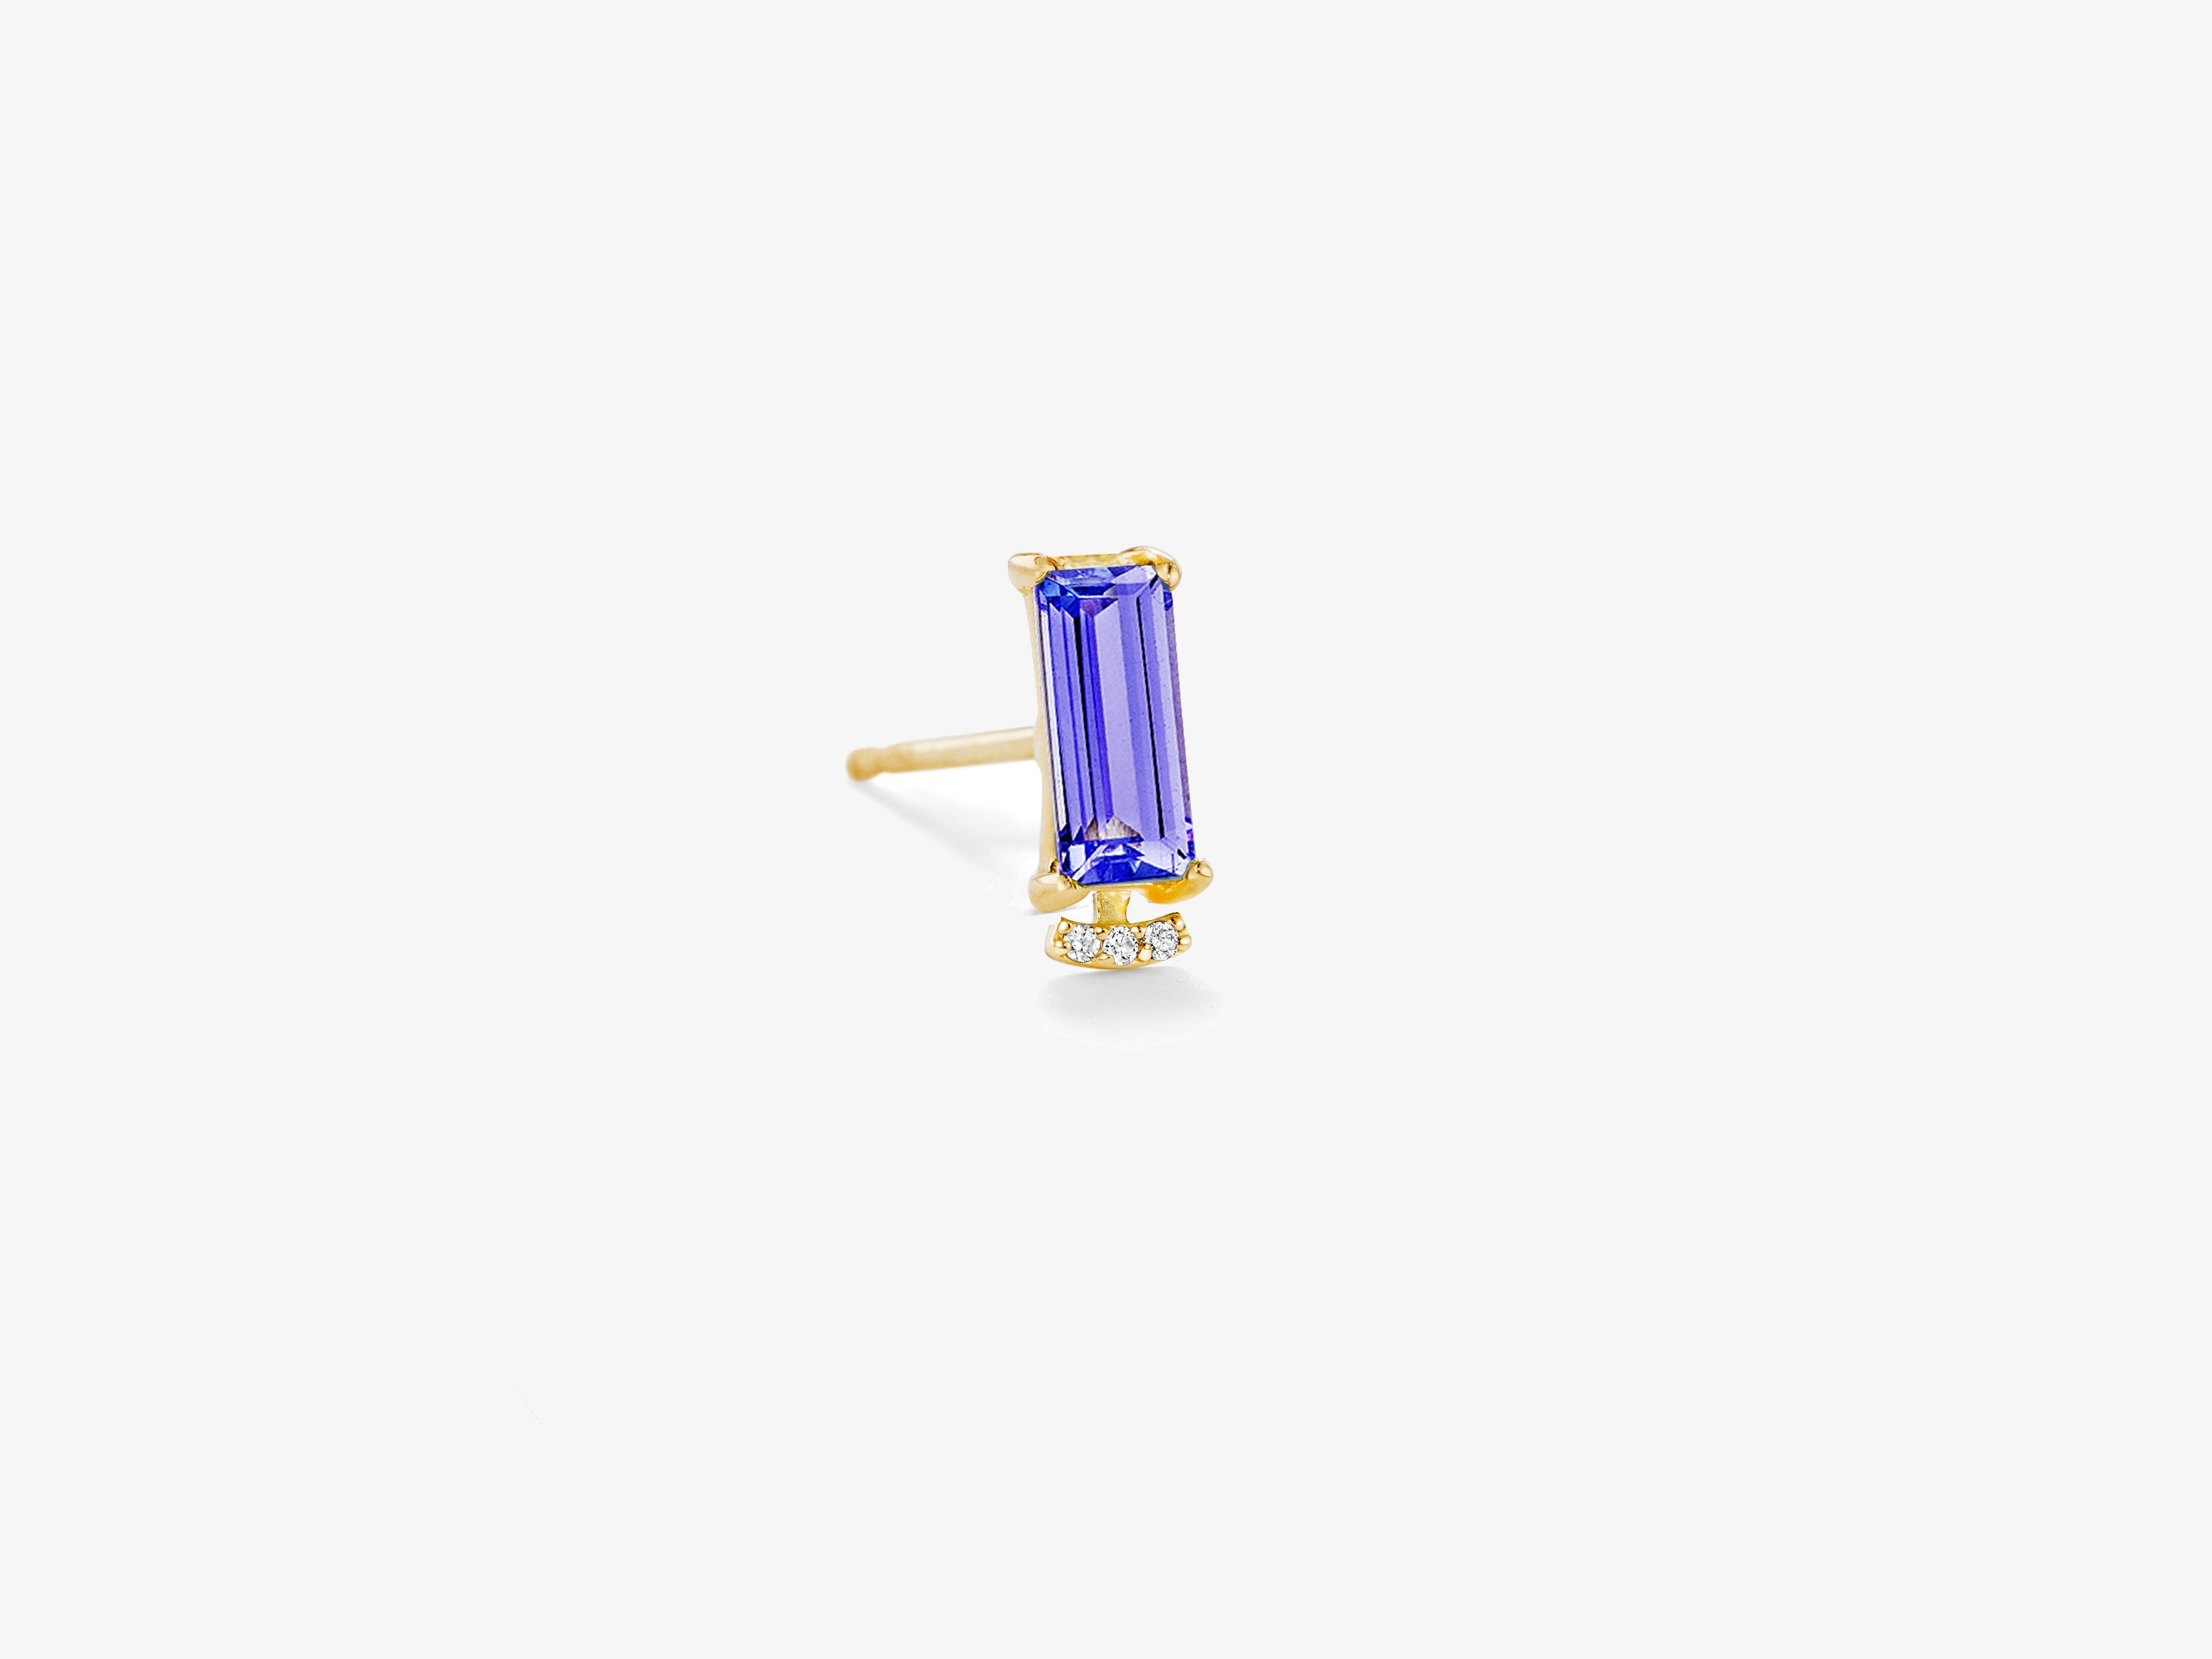 Small Single Baguette Gemstone Stud with Curved Diamond Pave Bar